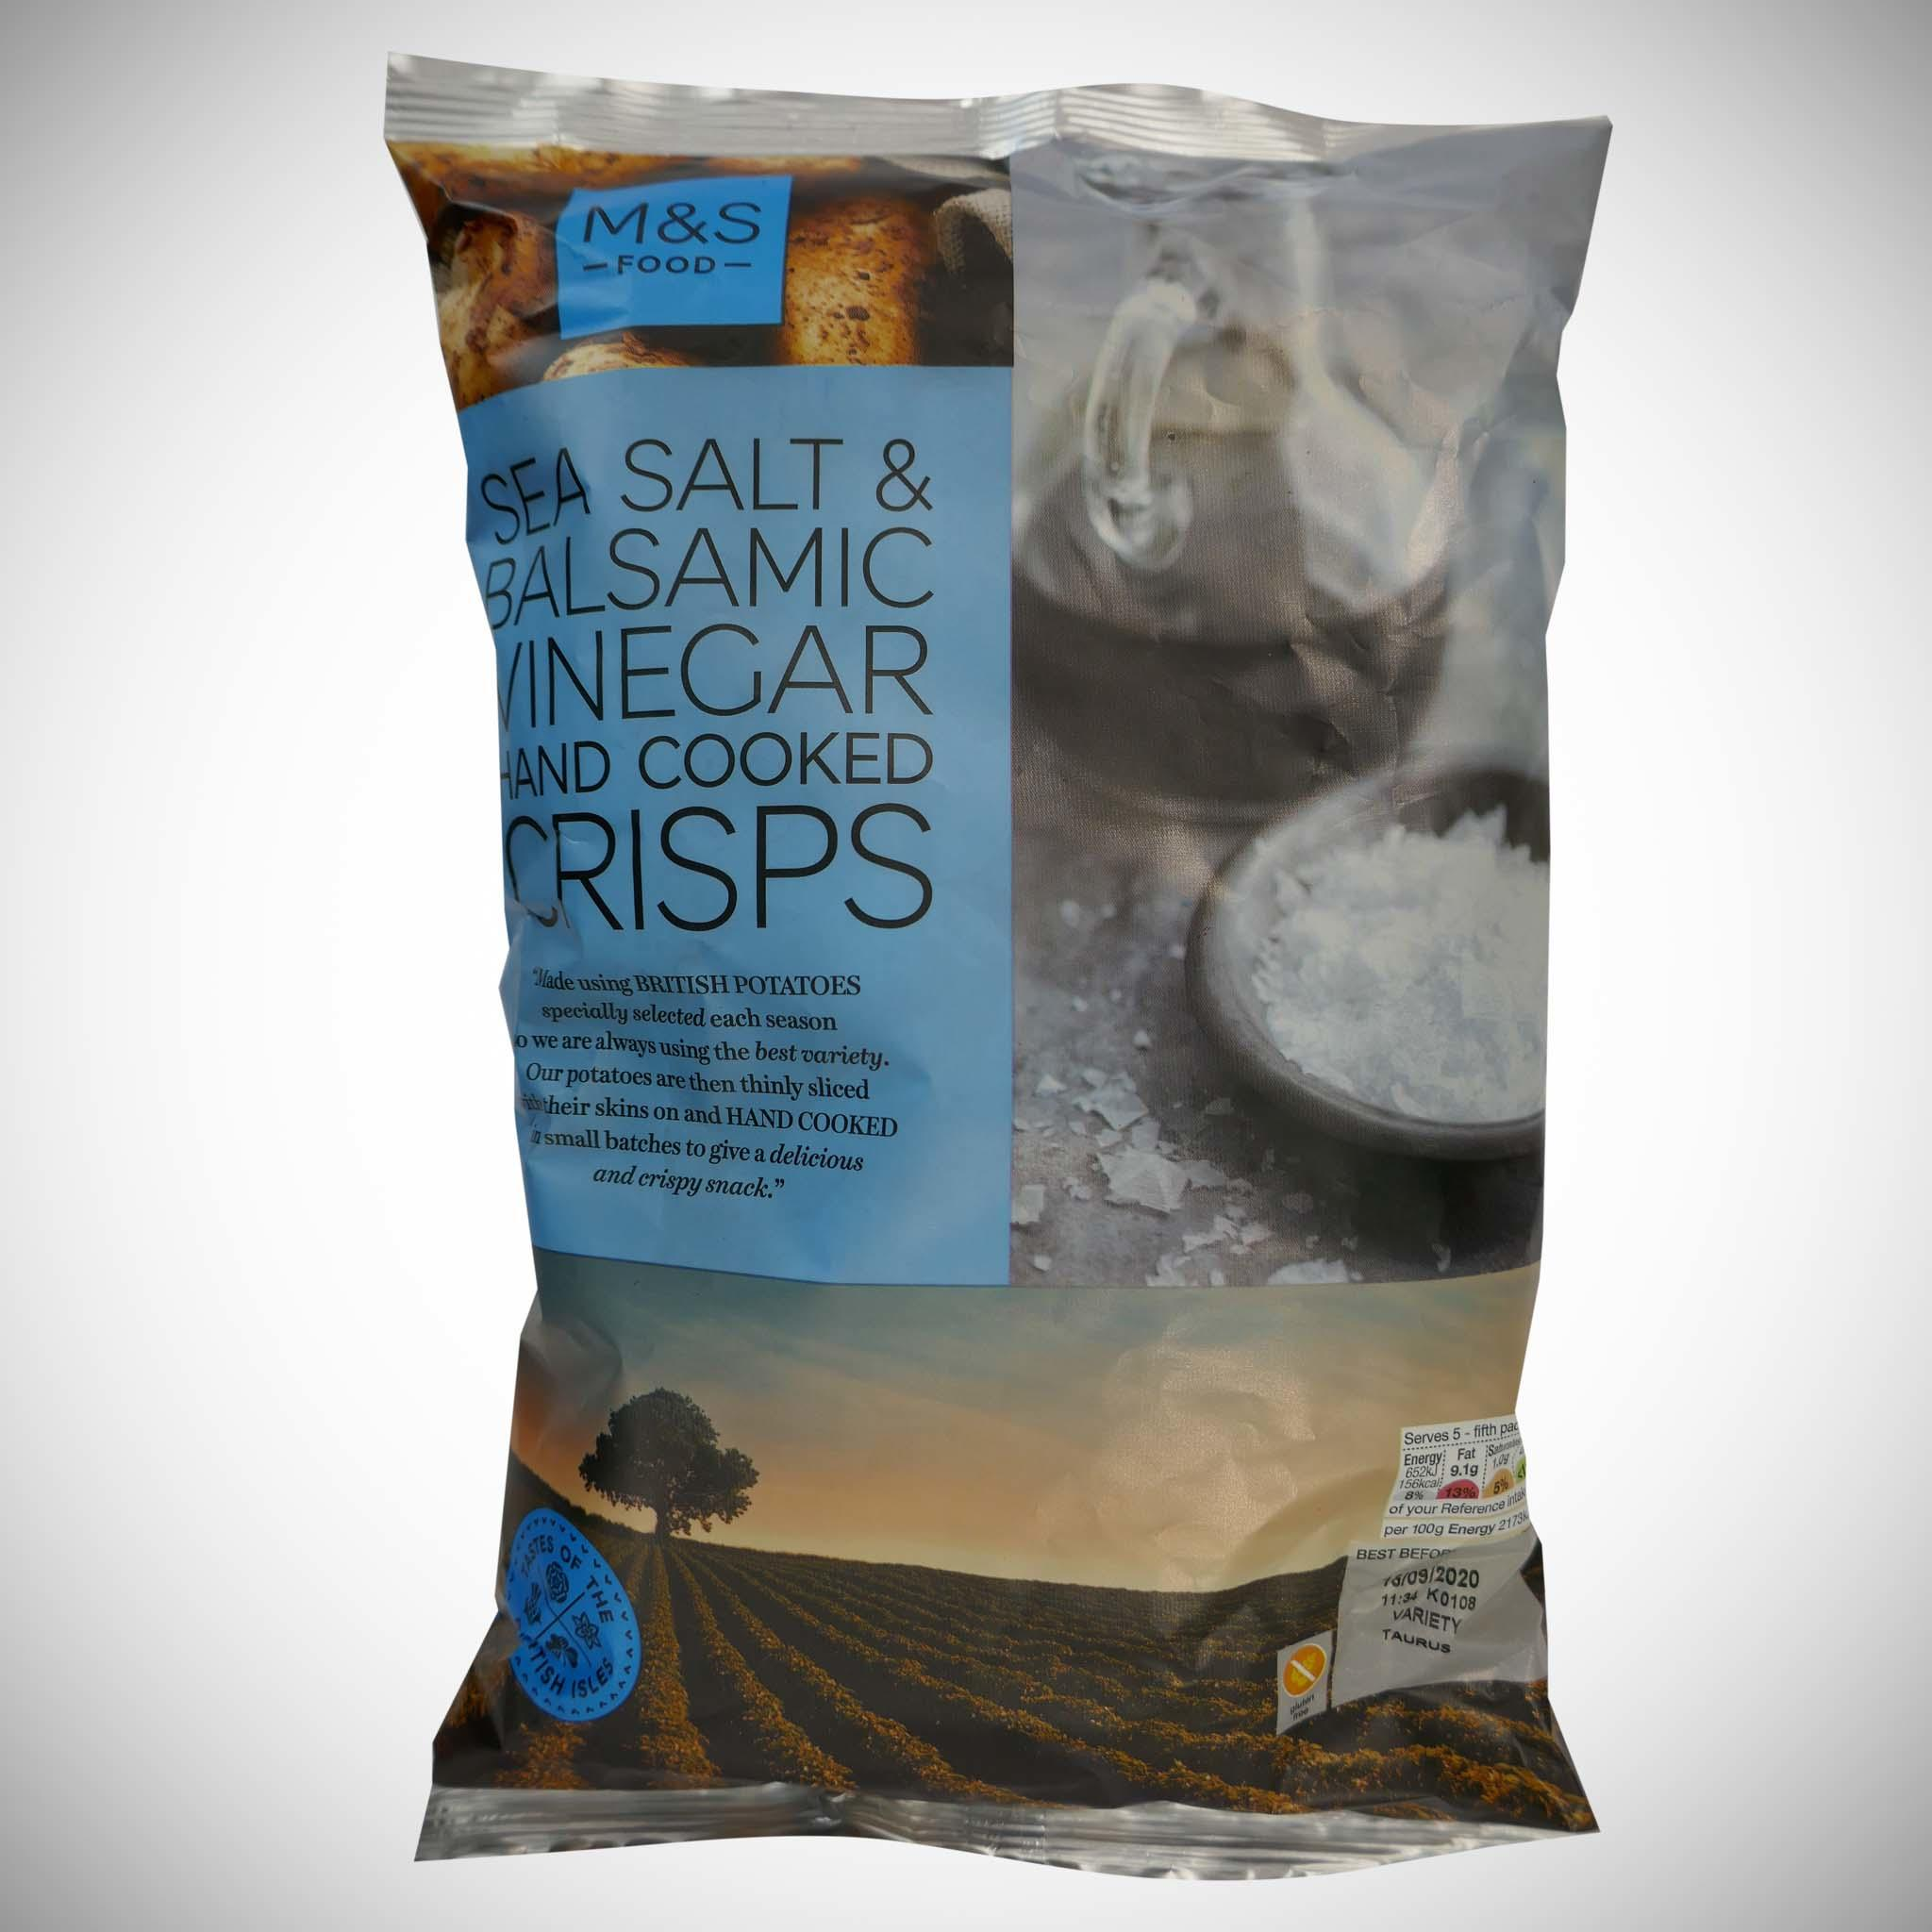 Sea Salt & Vinegar Handcooked Crisps